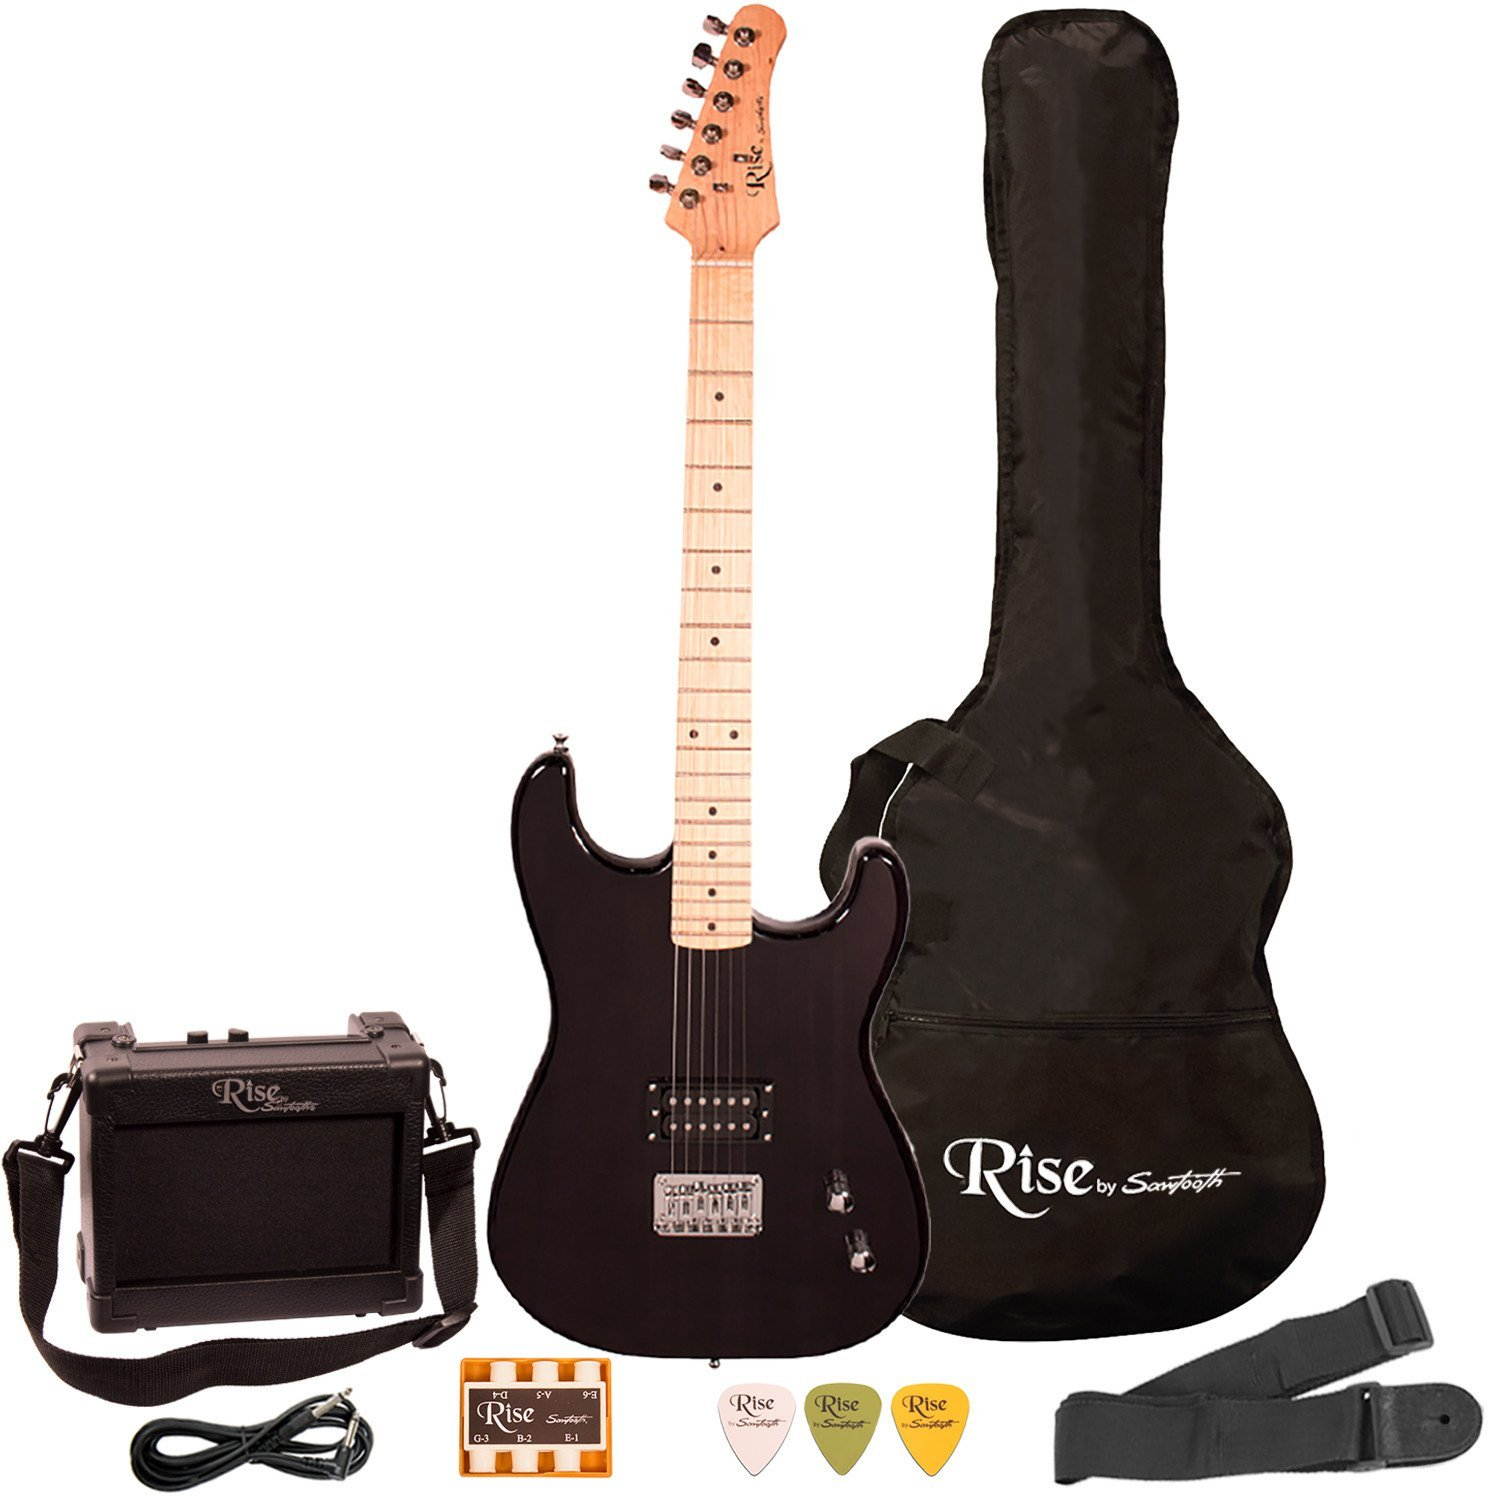 Rise by Sawtooth Right-Handed Full Size Beginner's Electric Guitar with Gig Bag & Accessories, Transparent Black